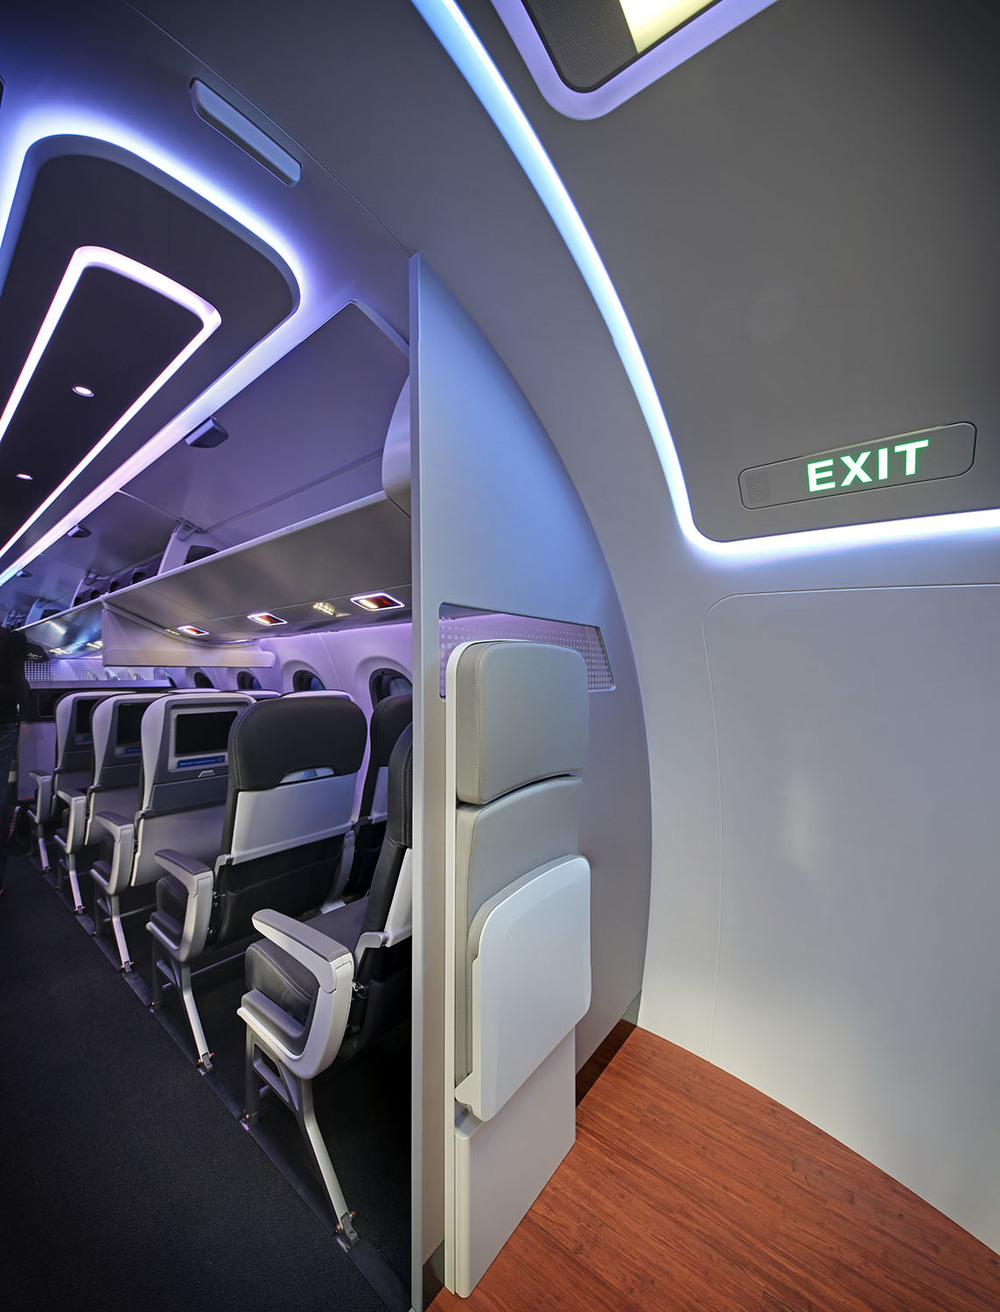 Inside Embraer E2 cabin mock-up, Farnborough Airshow, UK